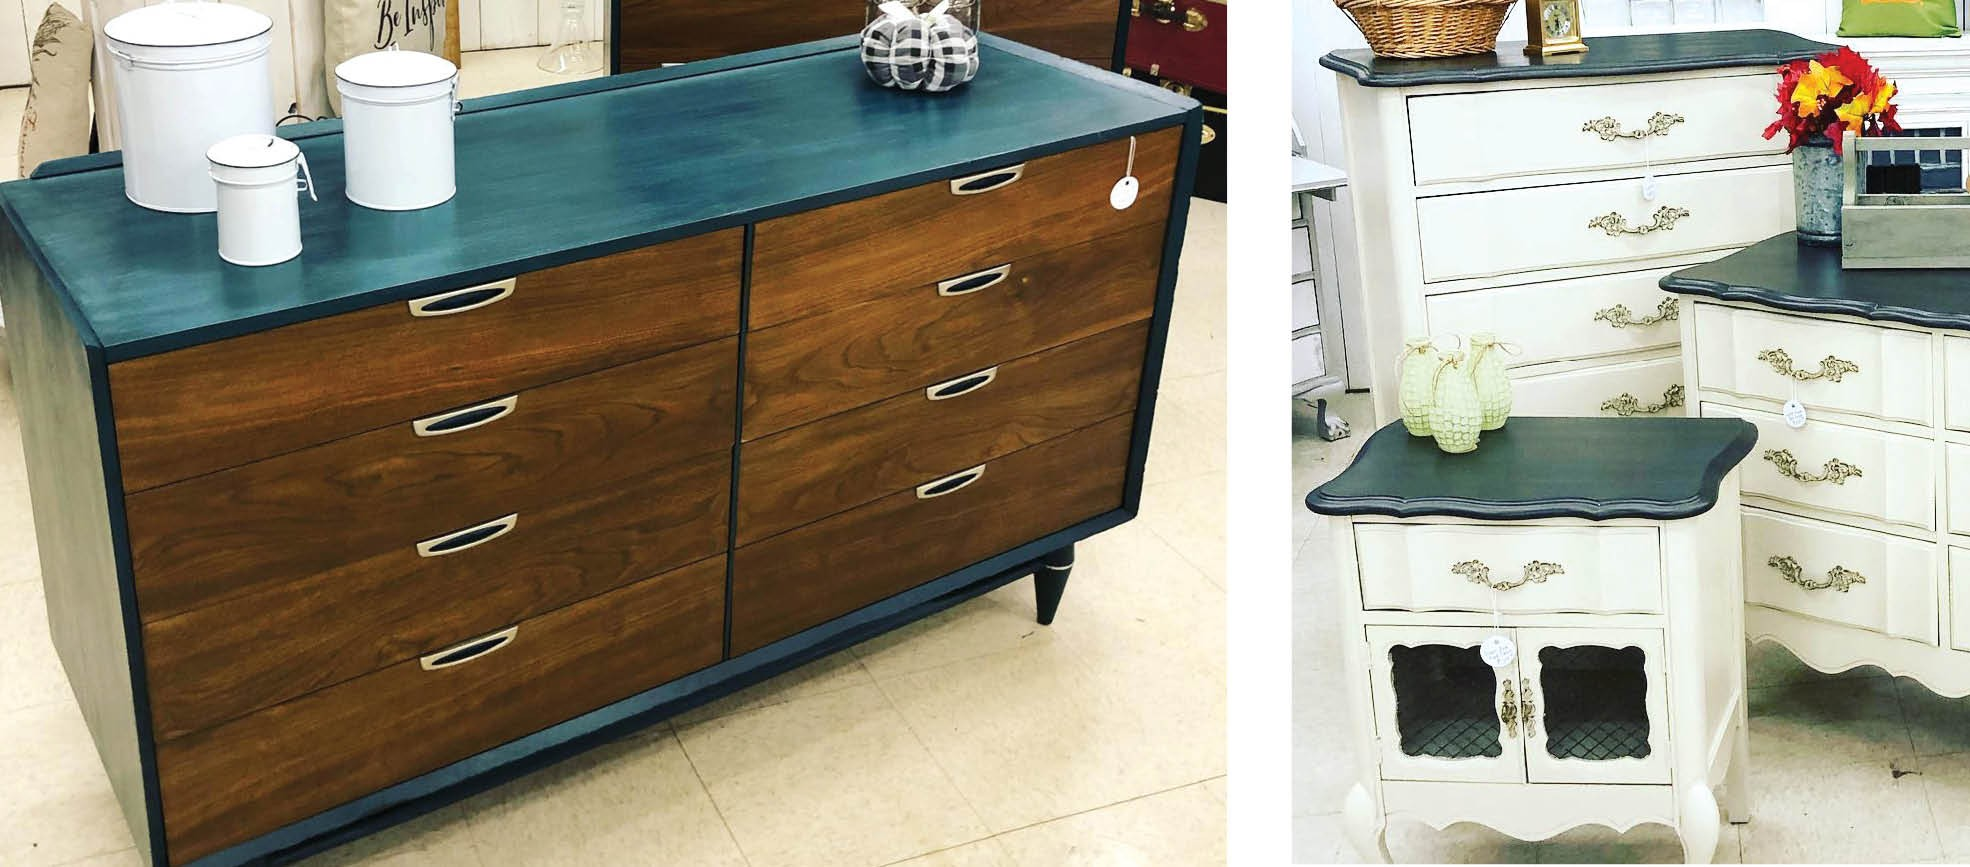 Deep teal offsets dark wood (above) or farmhouse cream (right) in these refinished dressers at Midtown Home & Vintage. - MIDTOWN HOME & VINTAGE PHOTOS